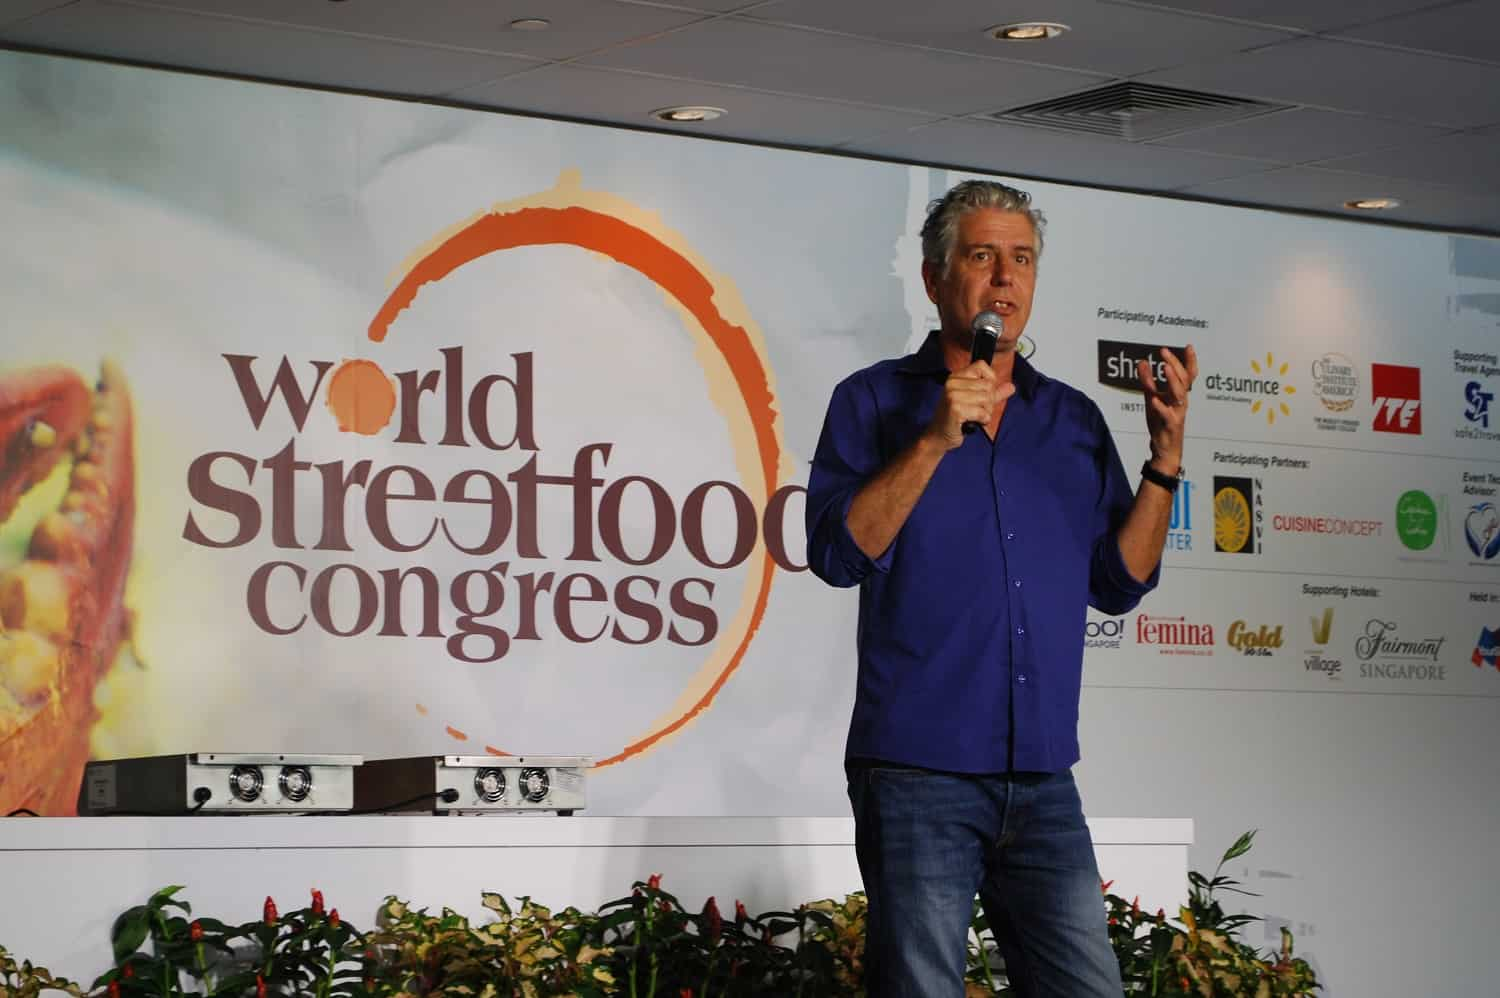 Anthony Bourdain at the World Street Food Congress in 2013